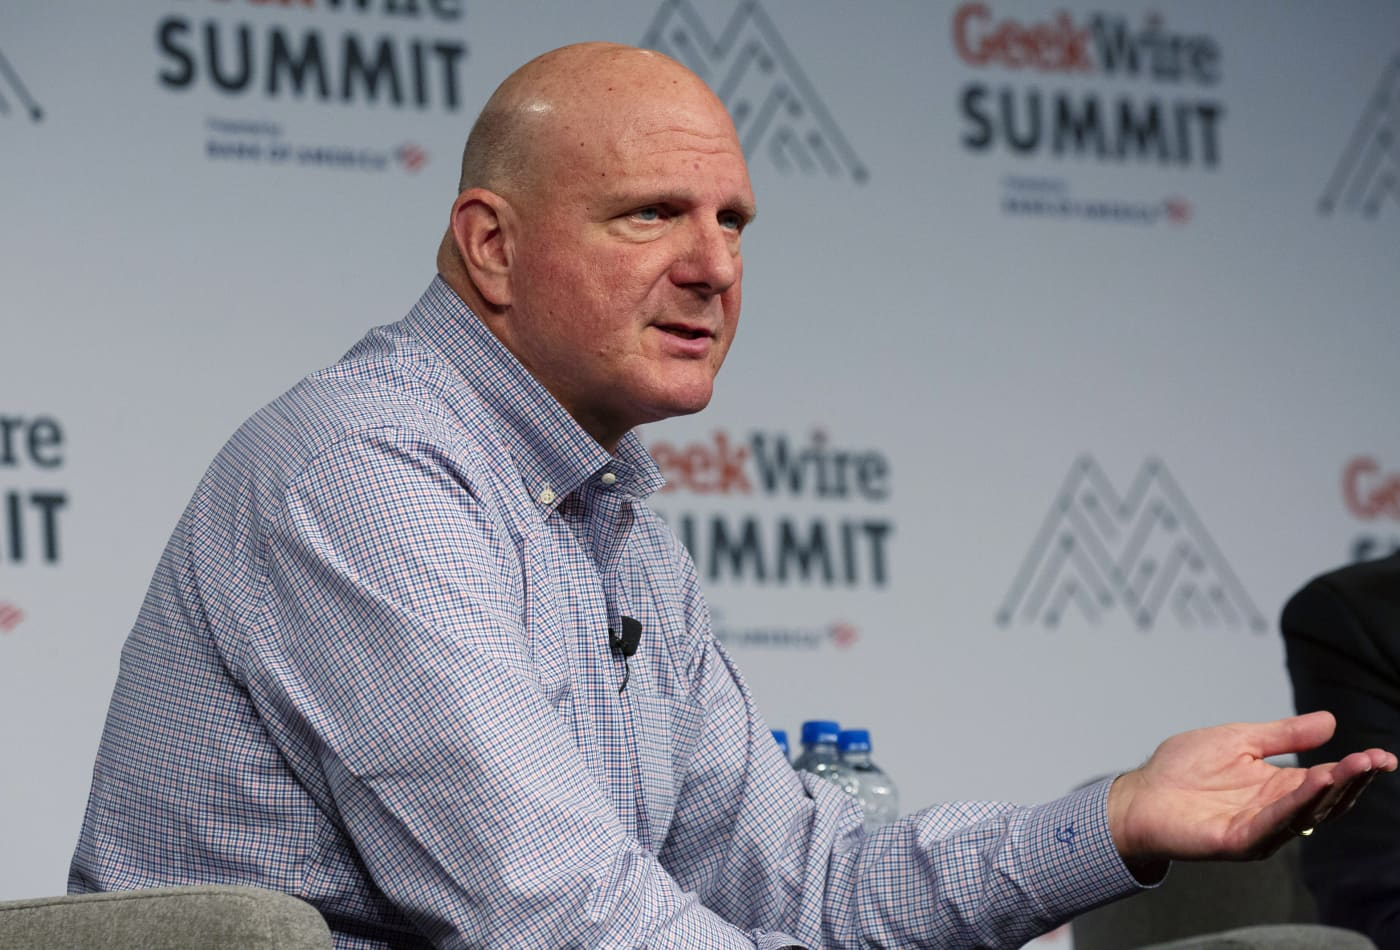 Steve Ballmer says he wishes Microsoft had entered cloud computing market earlier